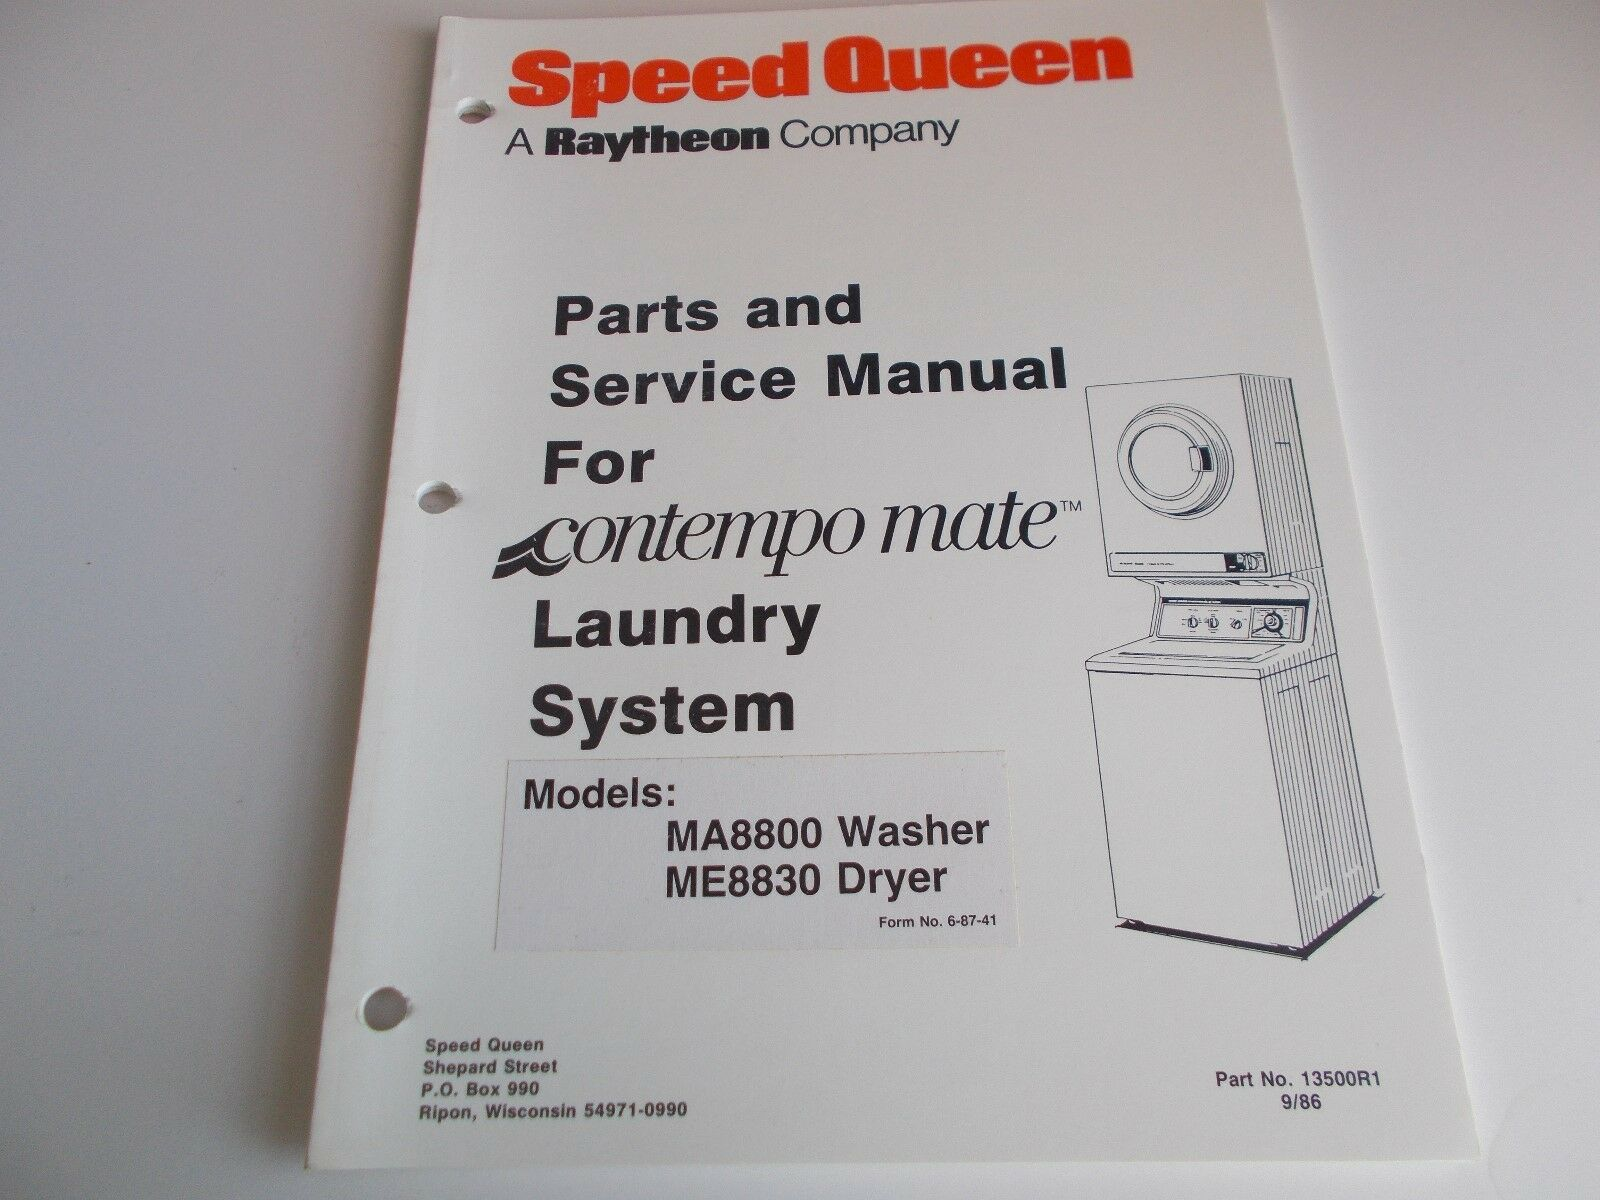 speed queen parts and service manual for contempomate laundry system rh picclick co uk